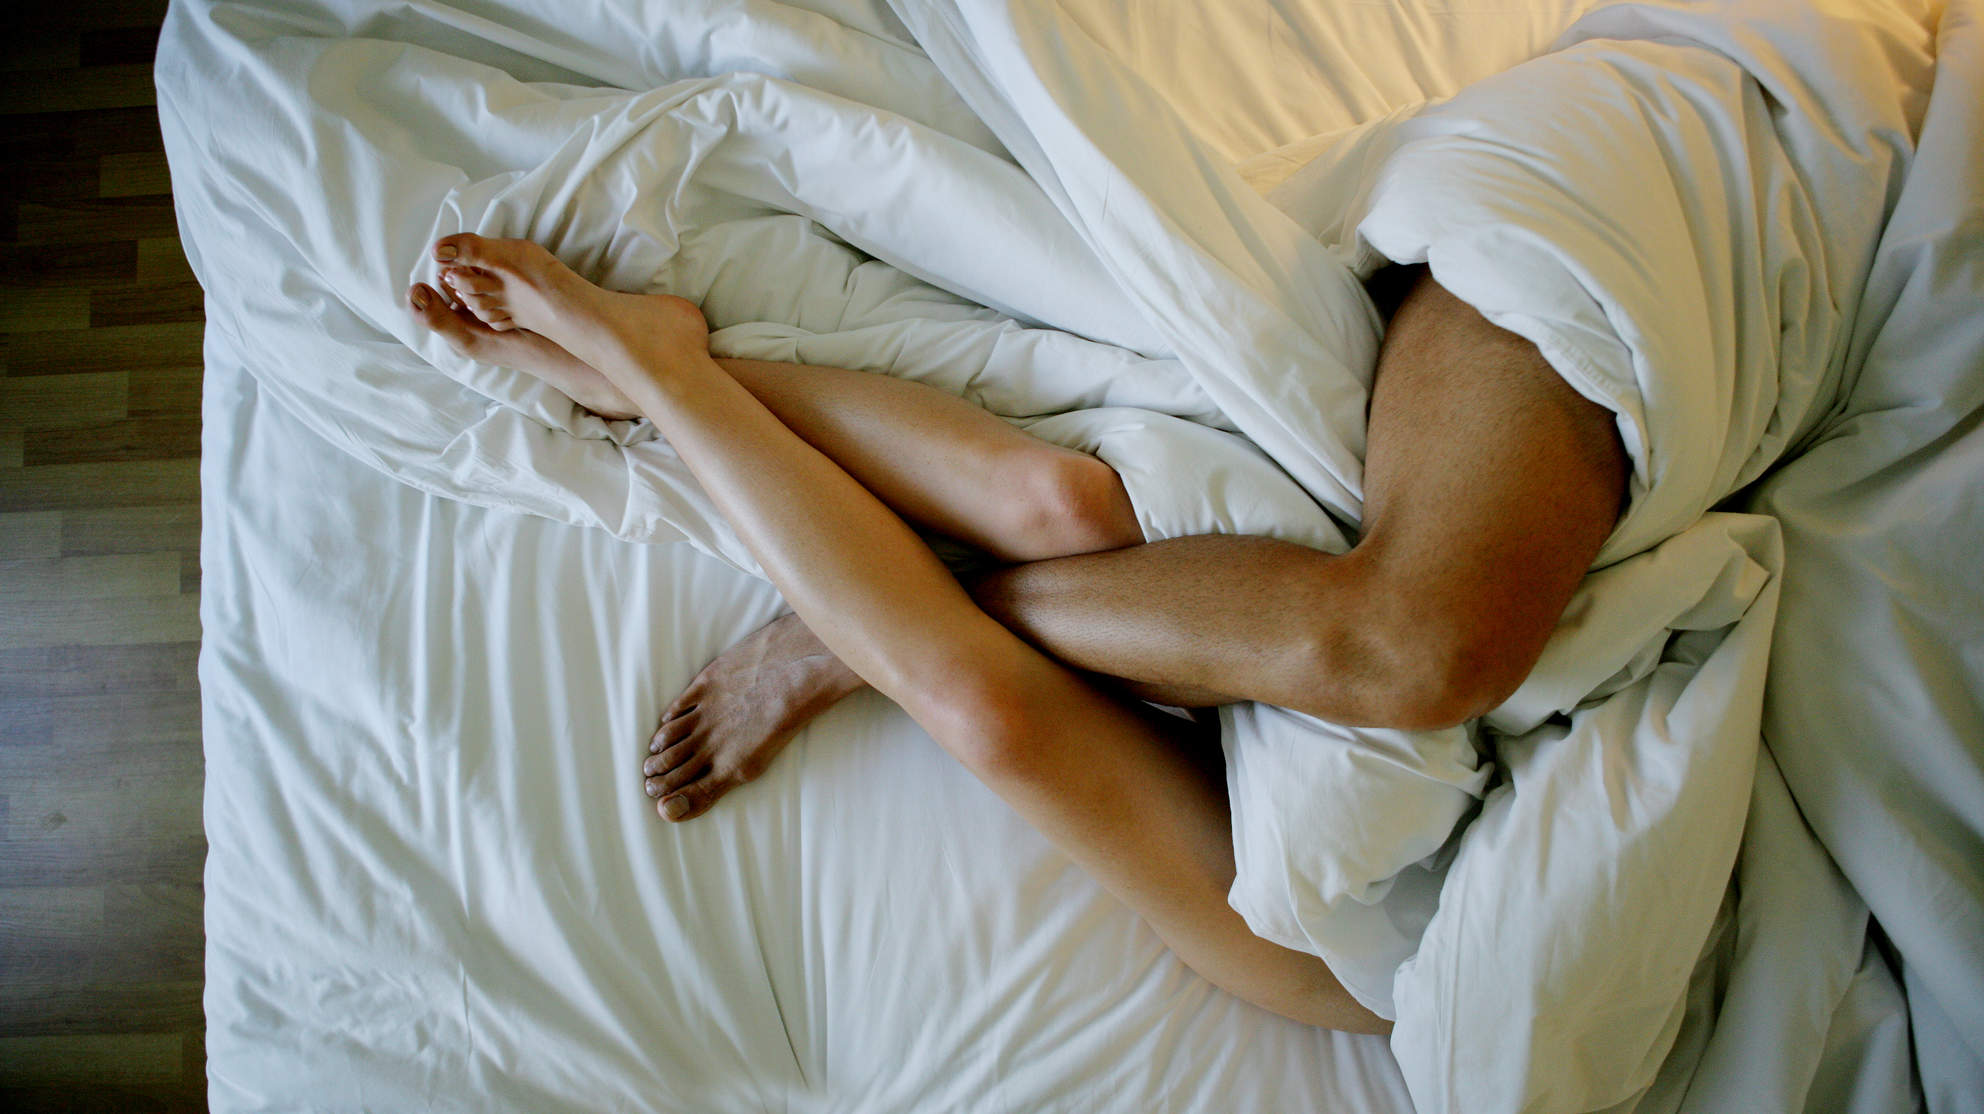 Why Women Find Sex More 'Disgusting' Than Men